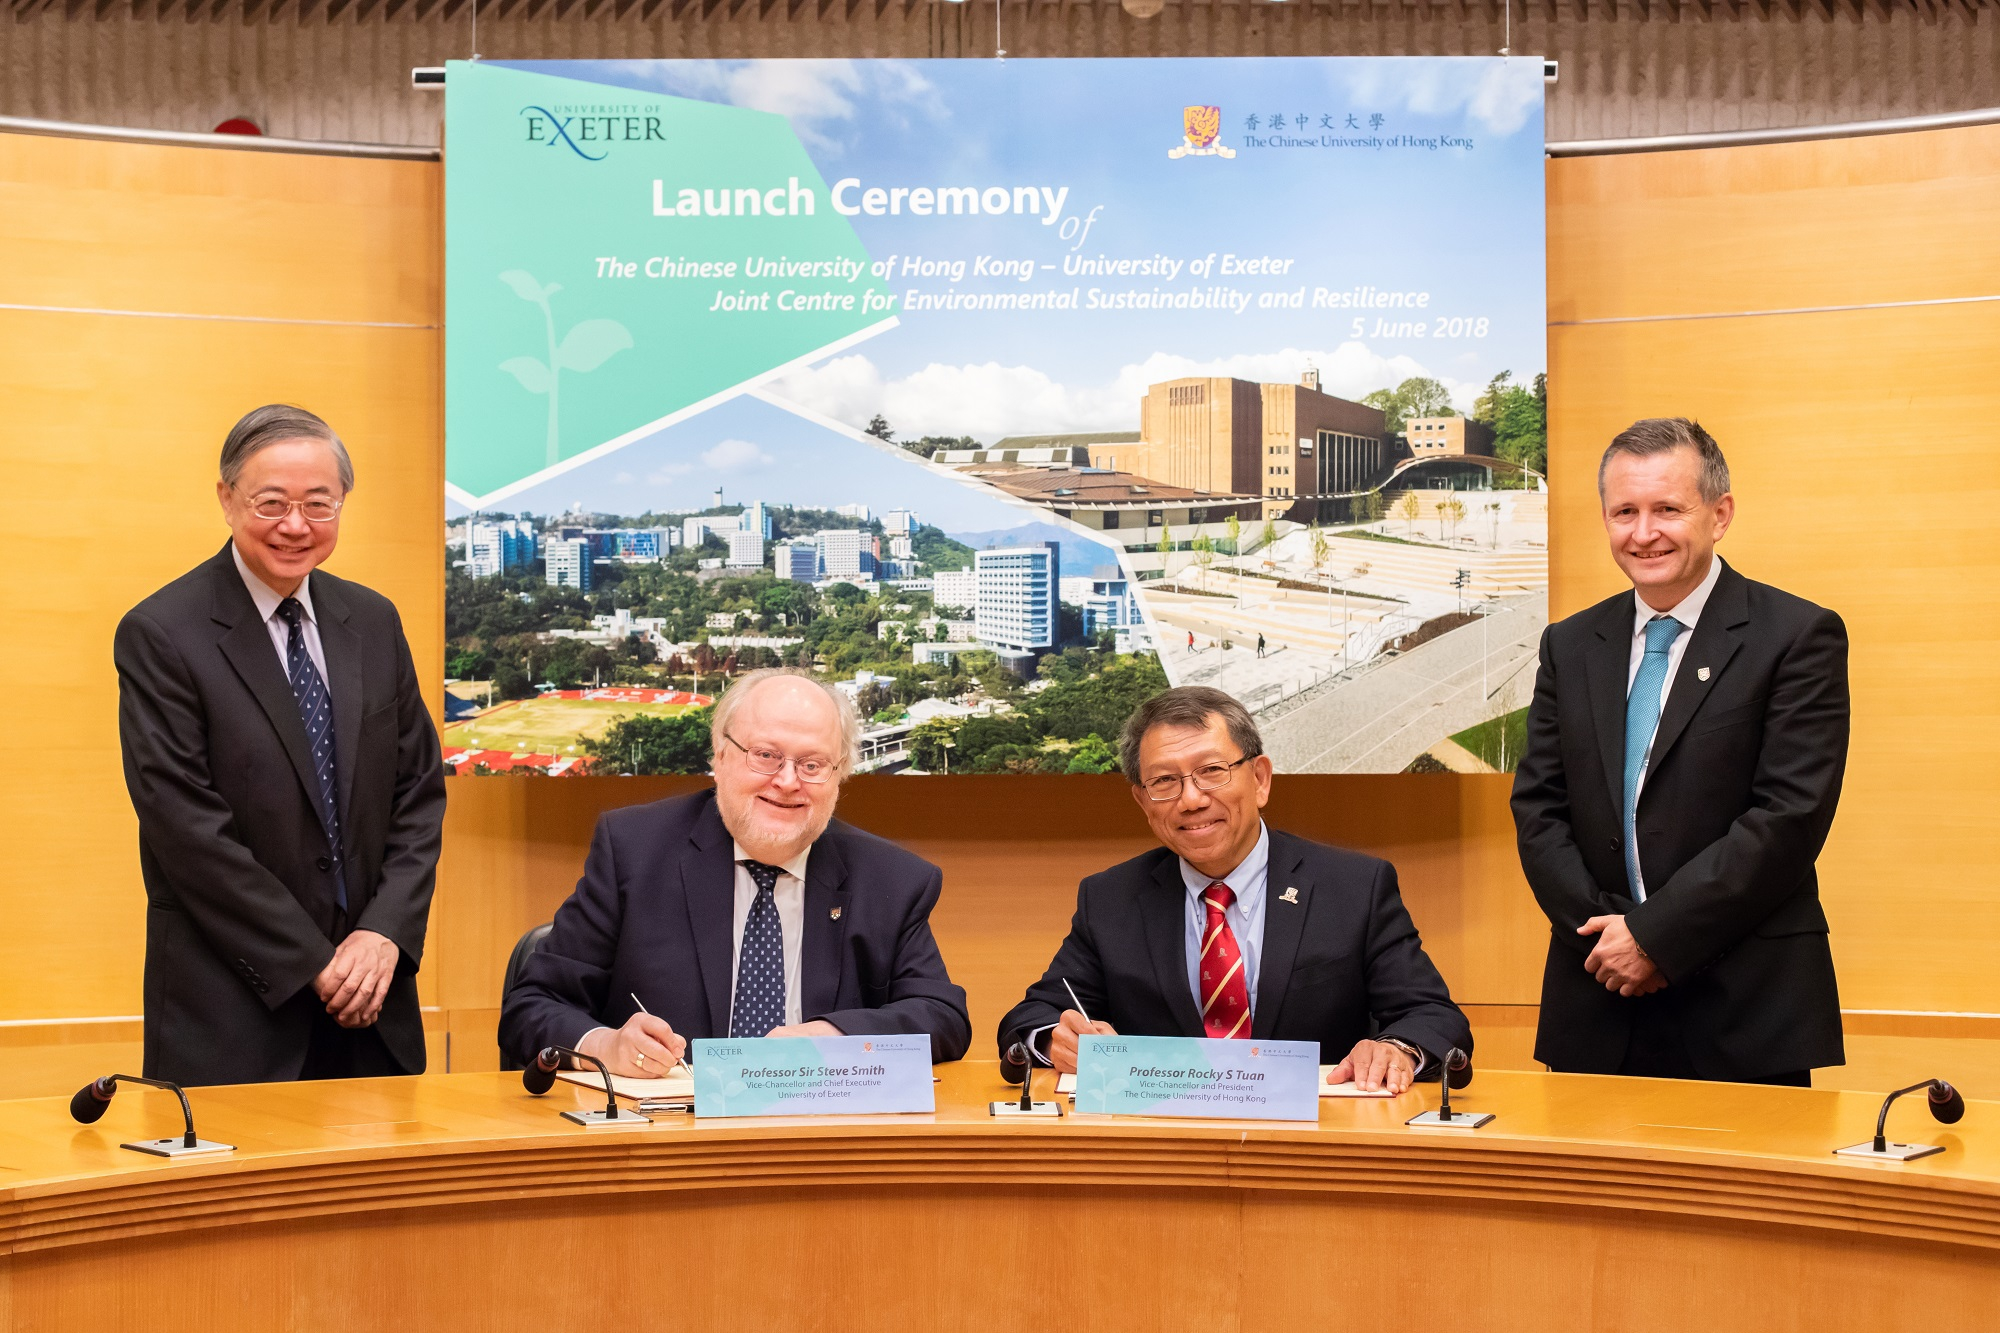 CUHK – University of Exeter Joint Centre for Environmental Sustainability and Resilience (ENSURE)